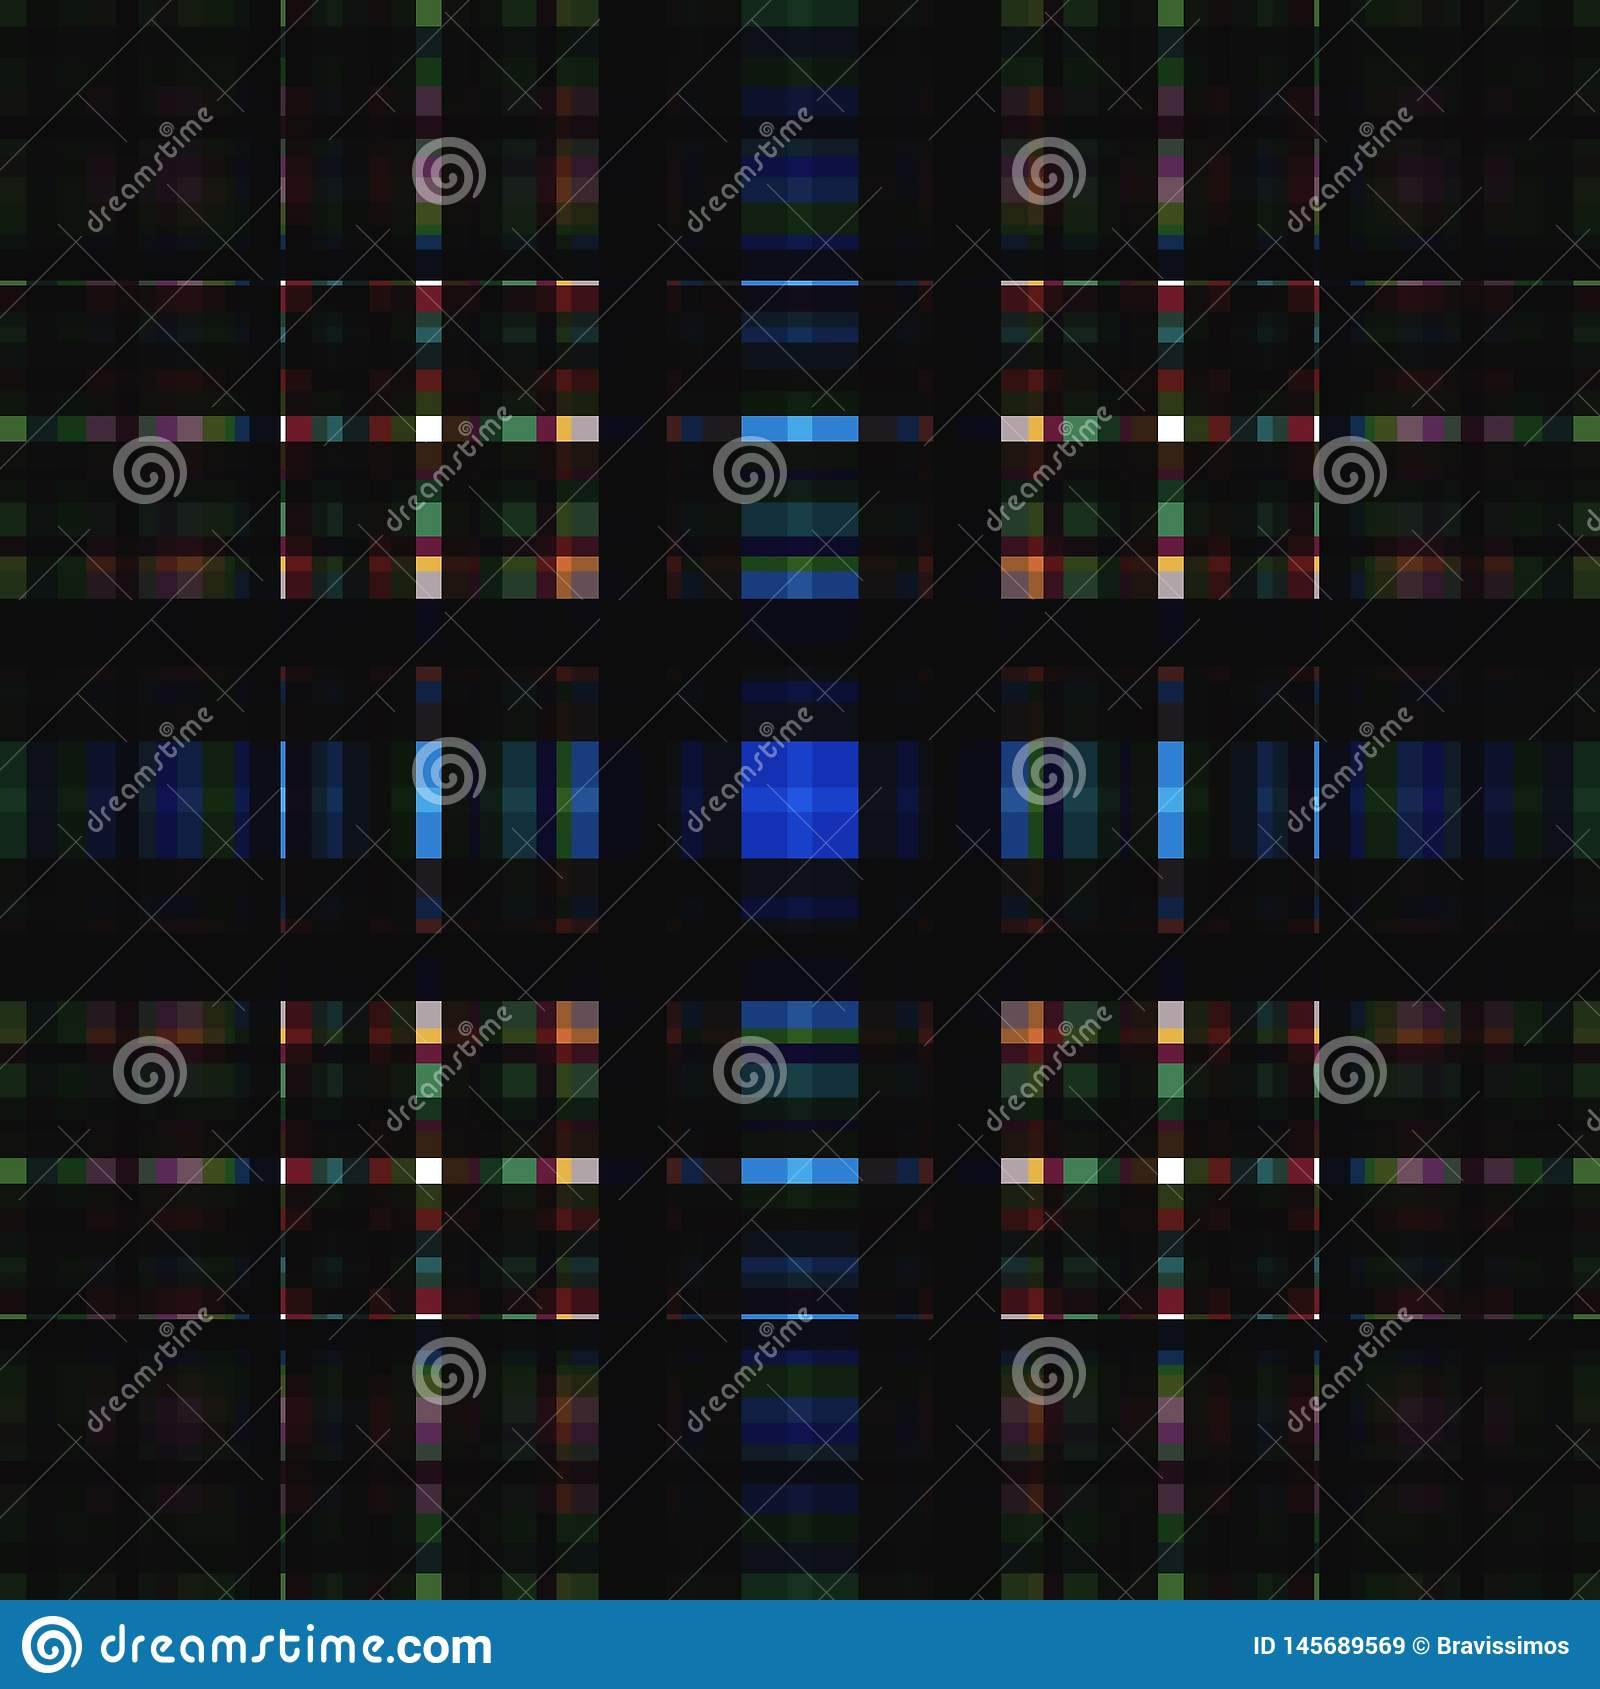 Square hypnotic pattern, illusion geometric.  repetitive